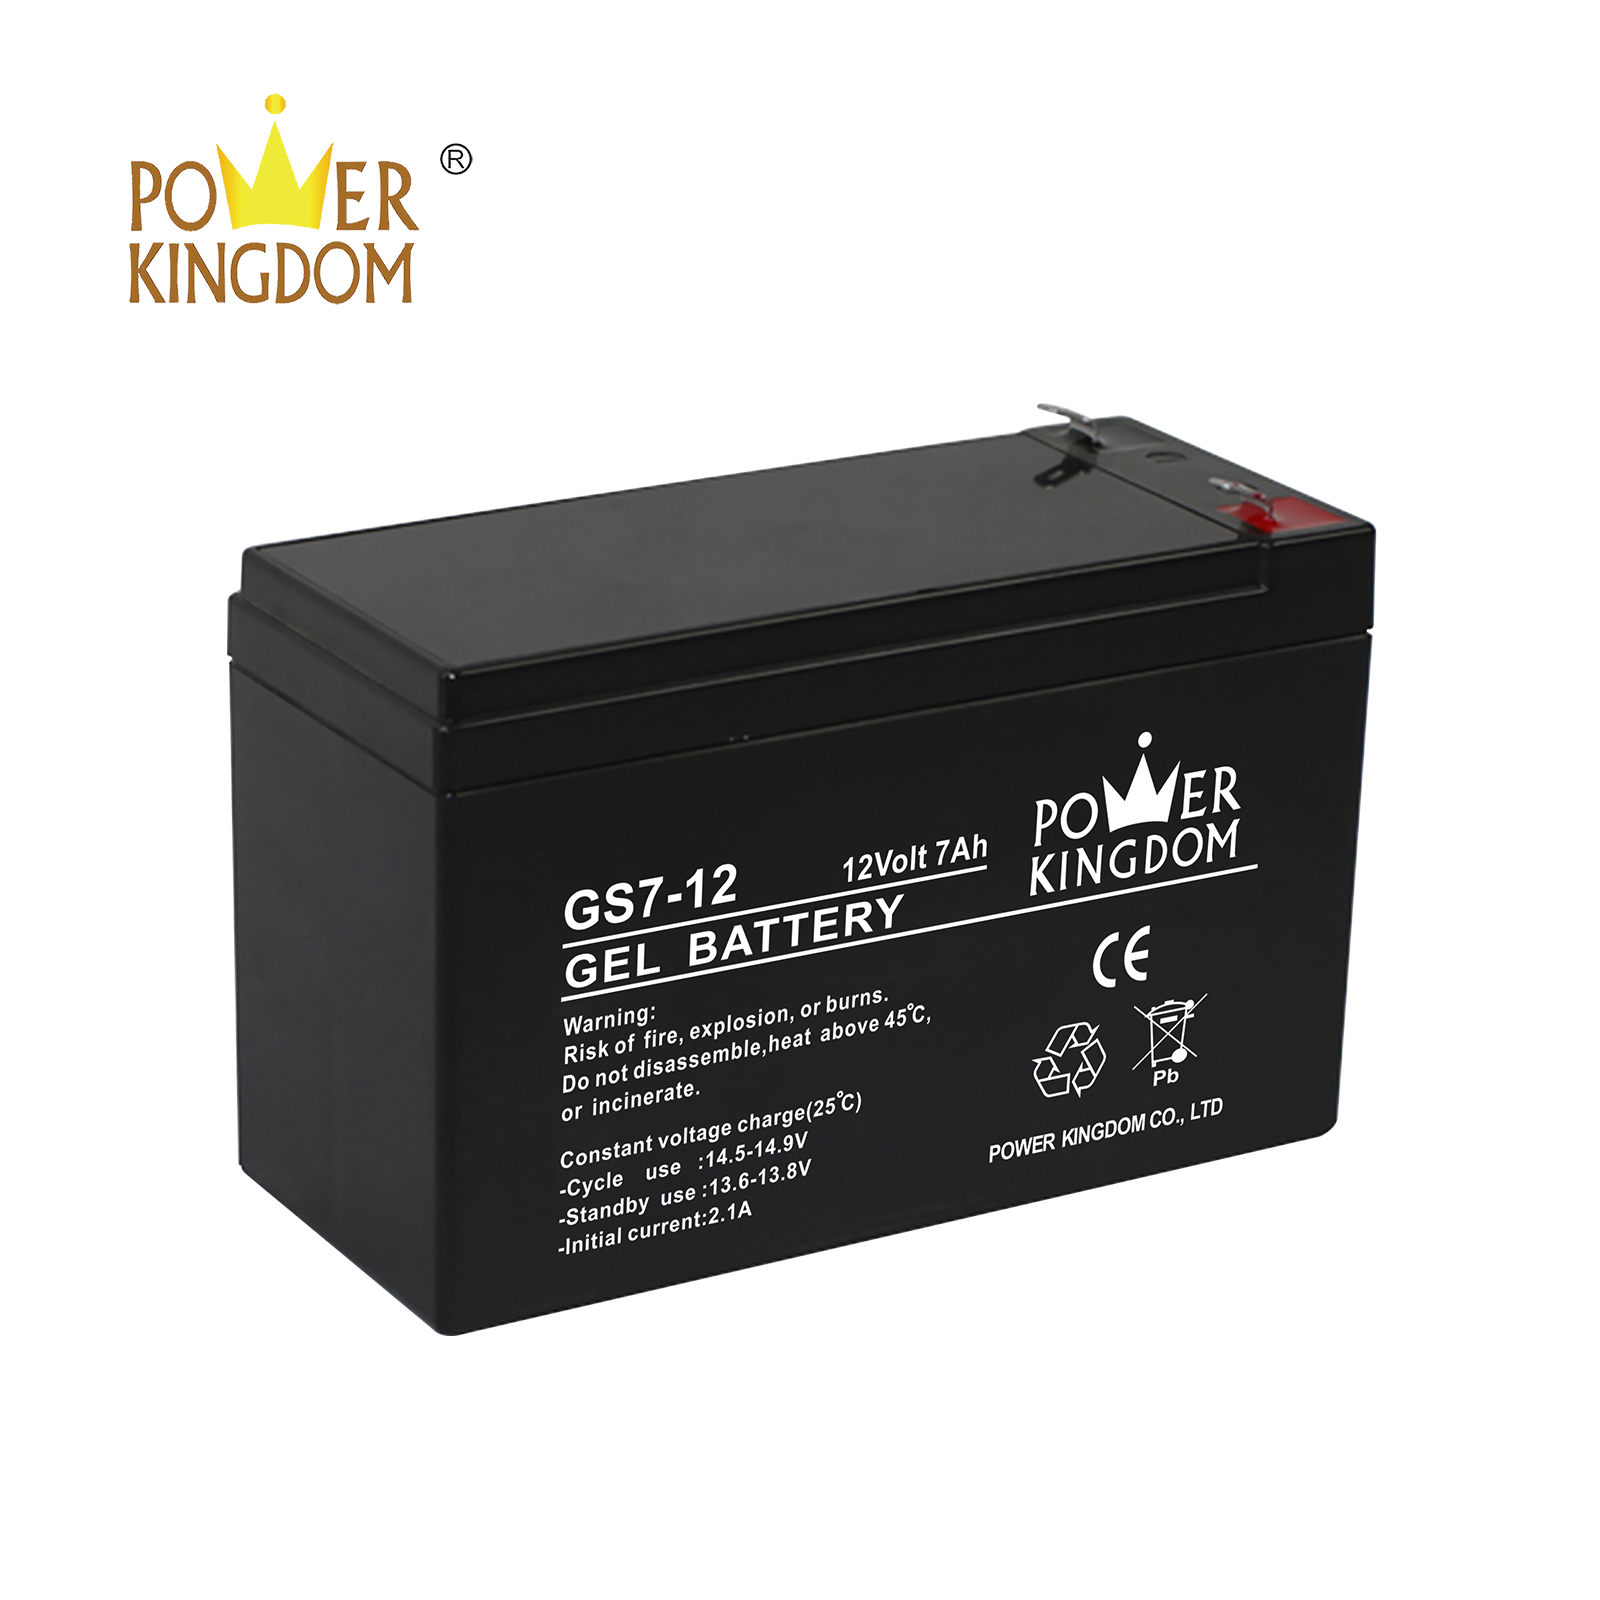 Power Kingdom regulated lead acid battery for business wind power system-2